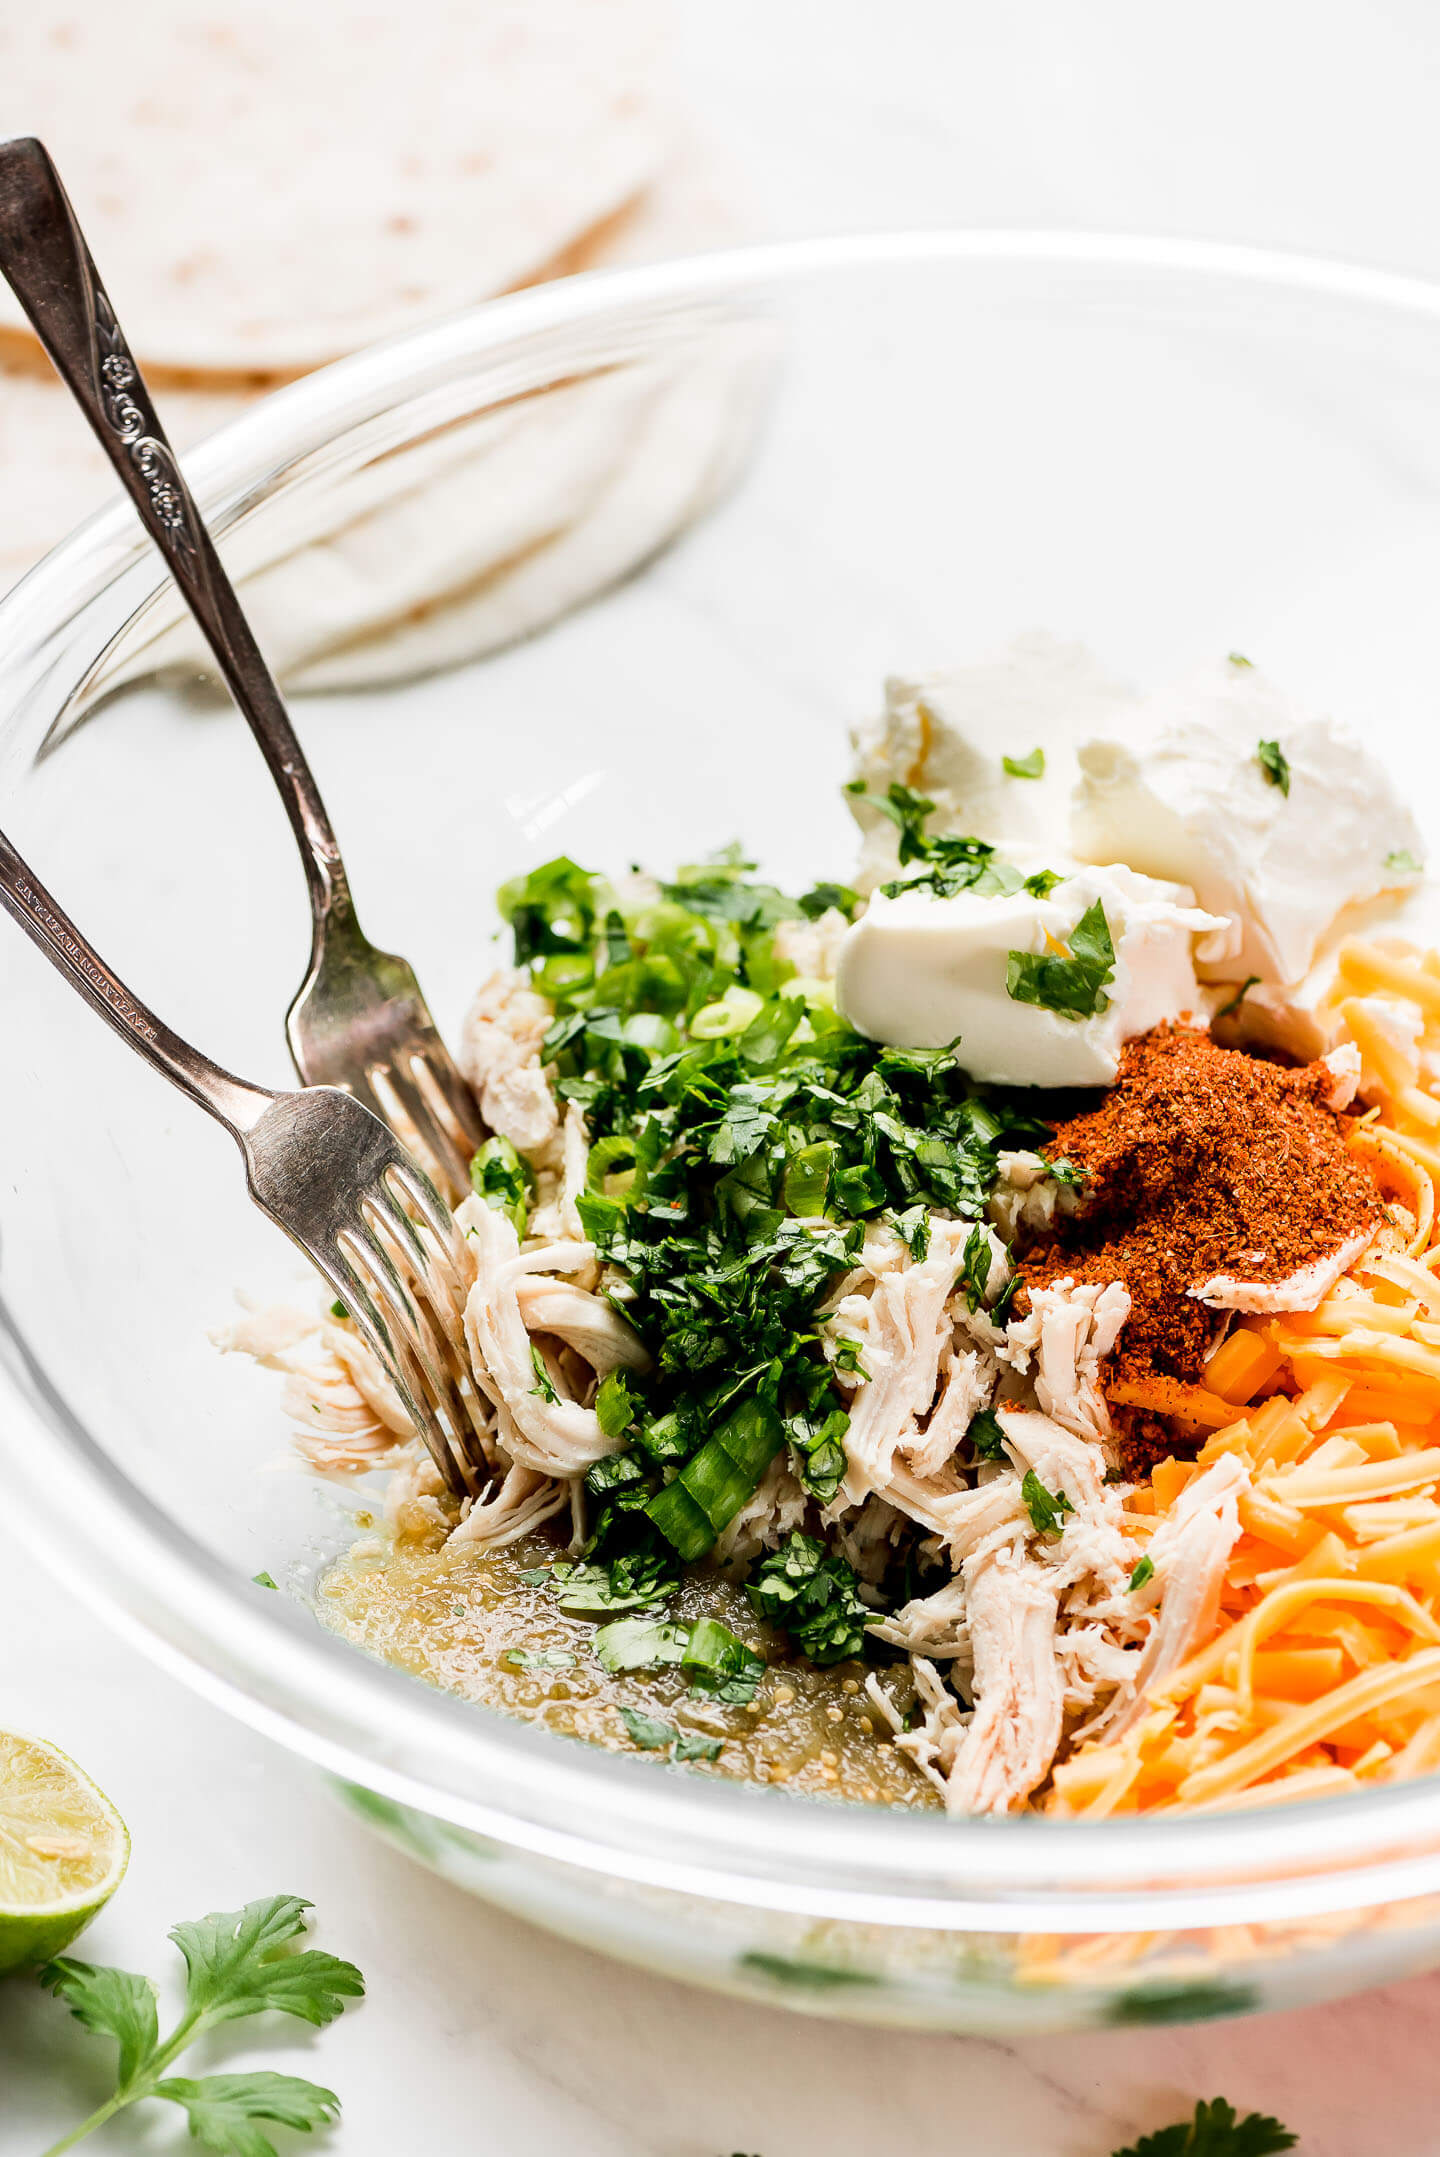 A large glass mixing bowl with shredded chicken, salsa verde, cheese, cilantro, green onions, cream cheese, and taco seasoning.